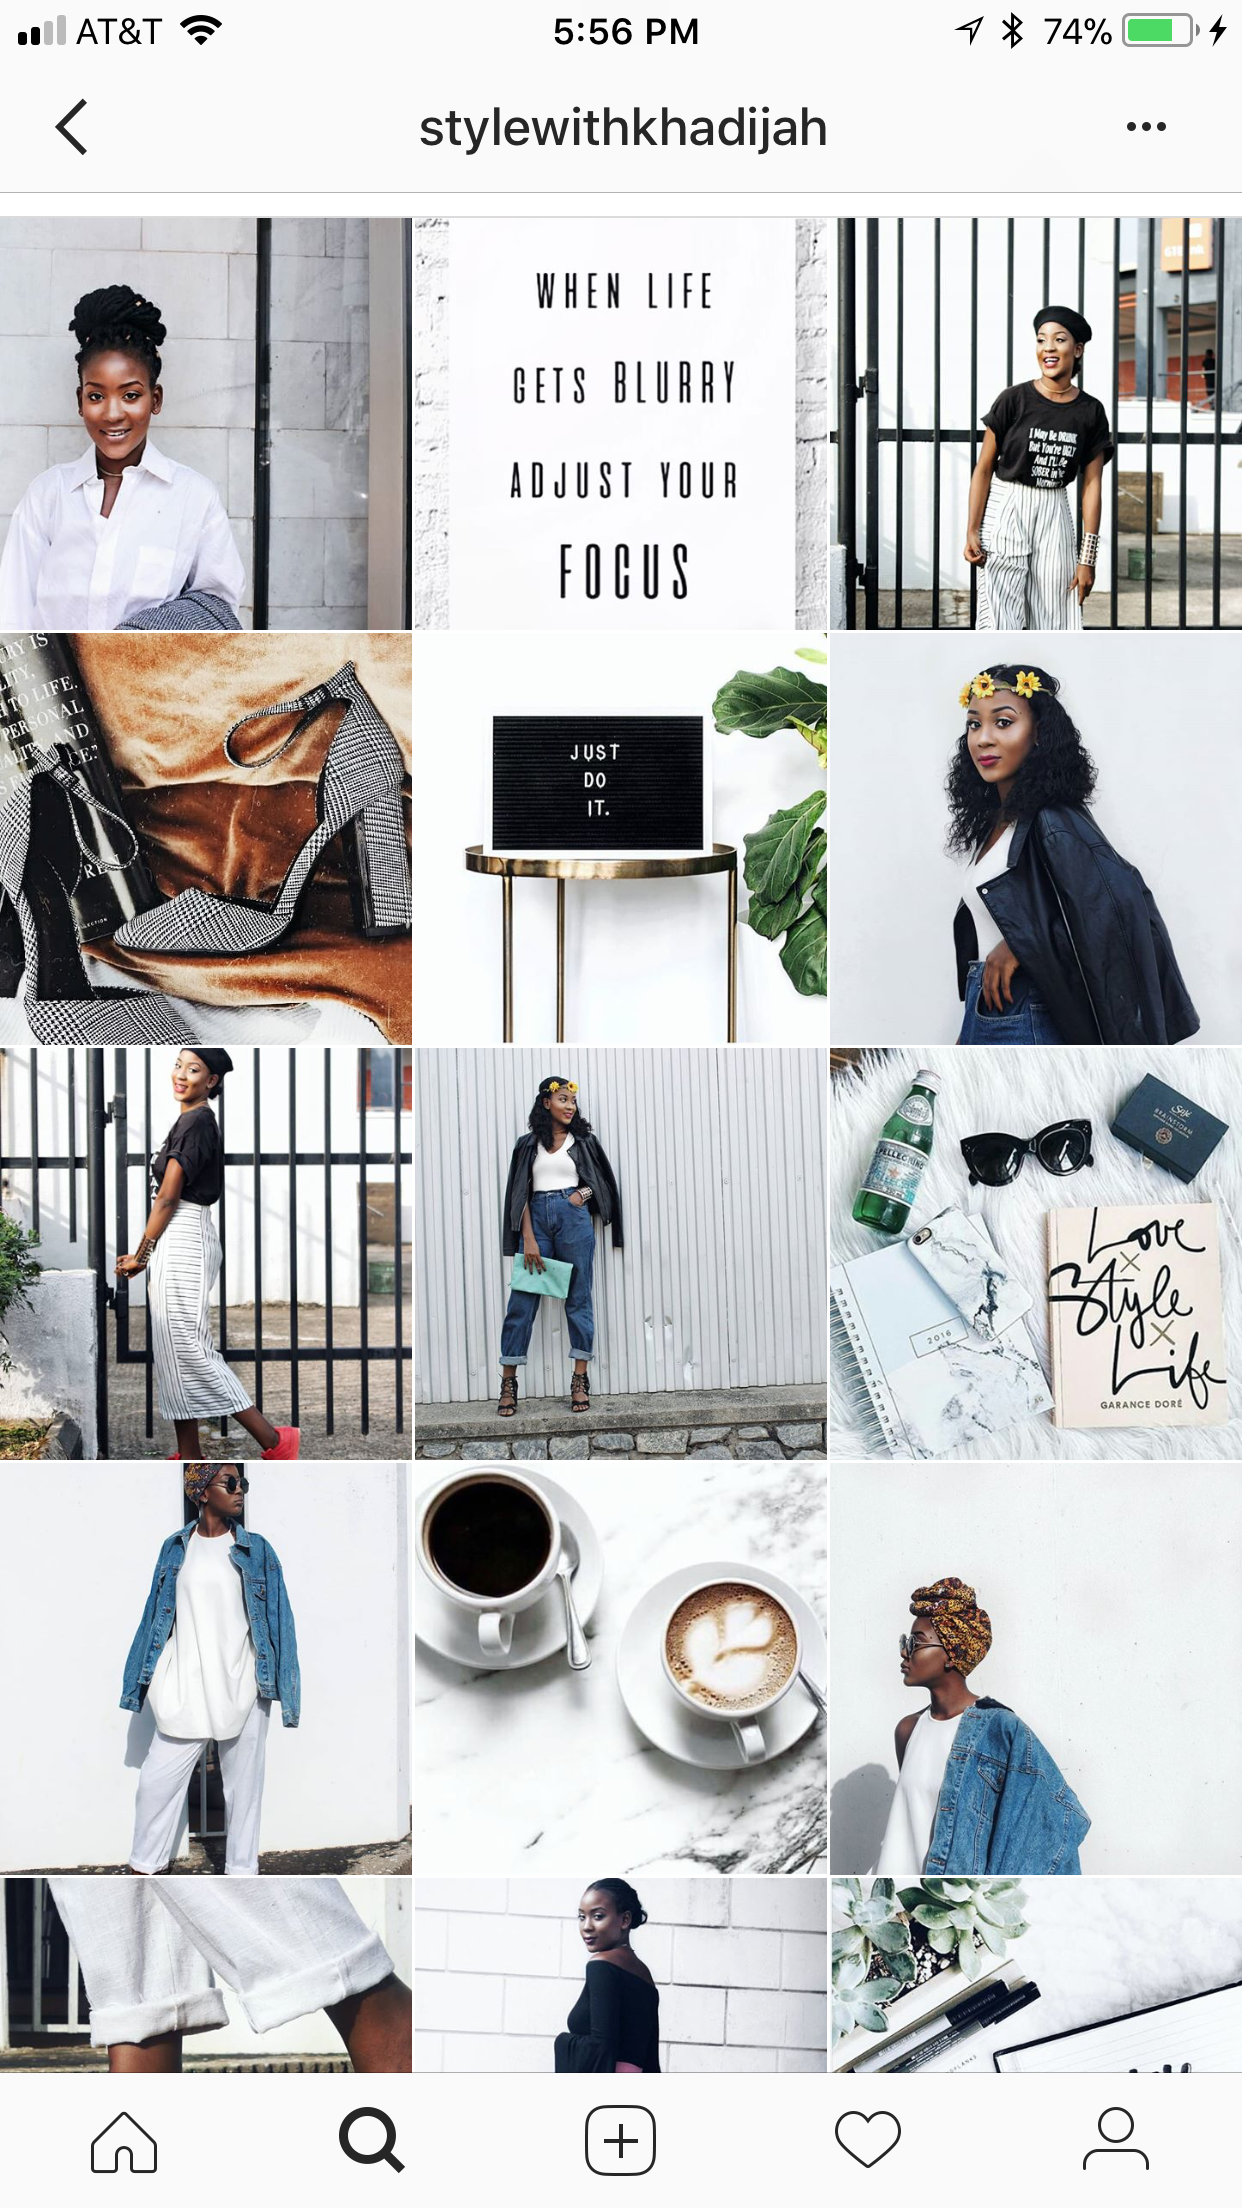 Khadijah Faleimu - Khadijah is a fashion, lifestyle, and christian blogger. I love her content a lot, I always spend my weekends reading and catching up on her fun and inspiring blog posts. Her blog is called